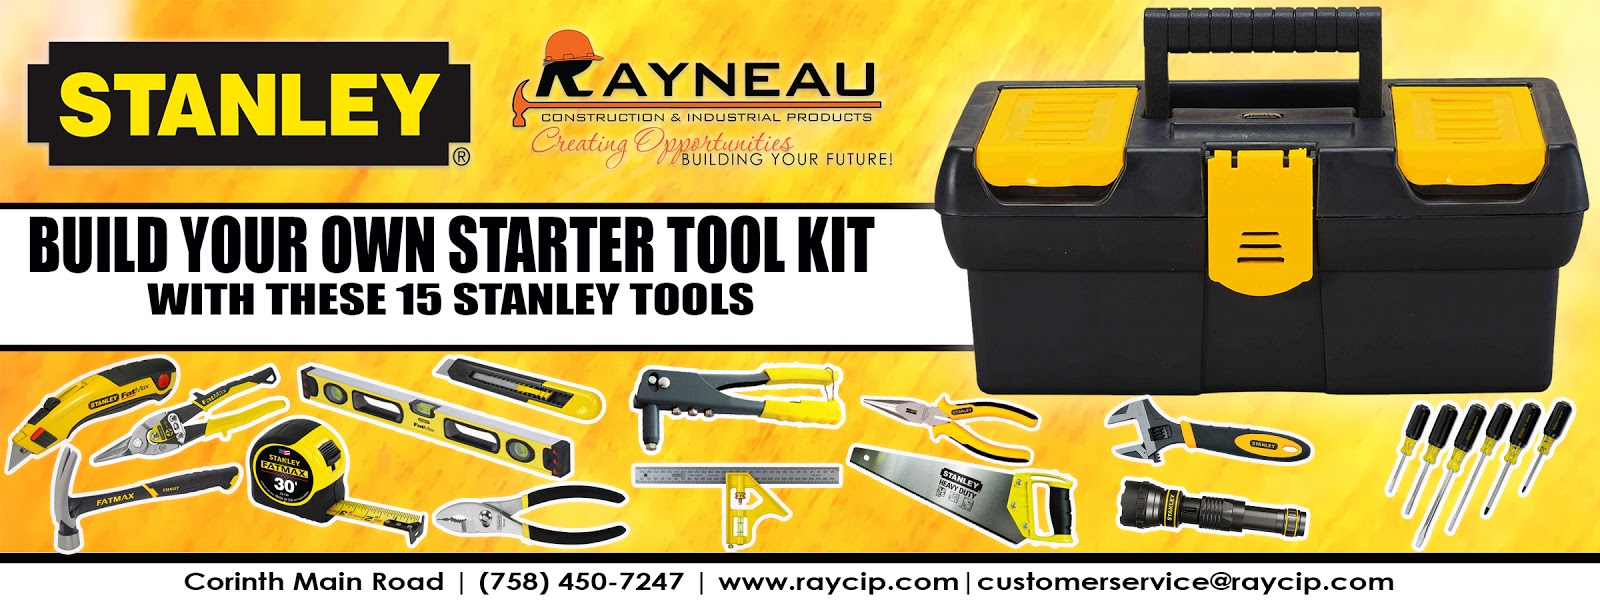 A Kit Of Basic Tools Is Useful For Quick Fi And Small Household Tasks The Homeowner Seasoned Diyer Or Handyman It Essential